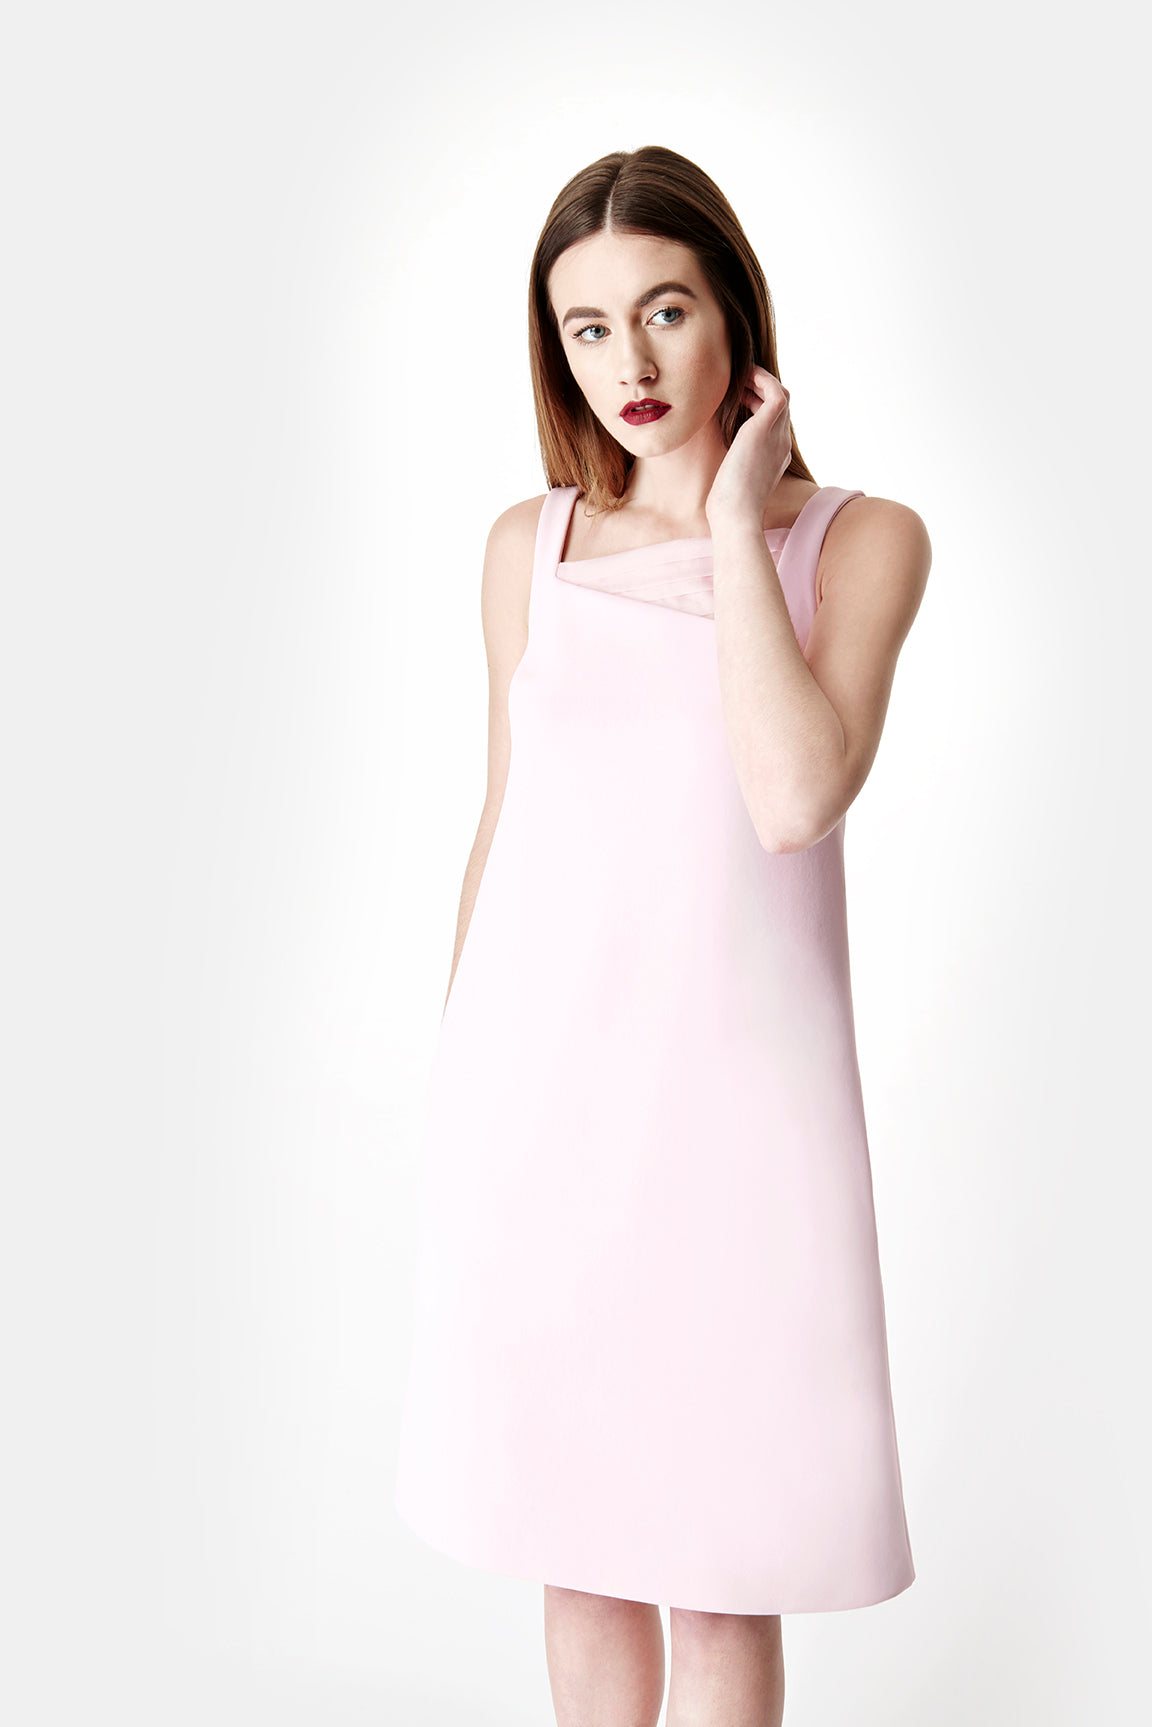 Sarah Bond Lola Dress in Pink